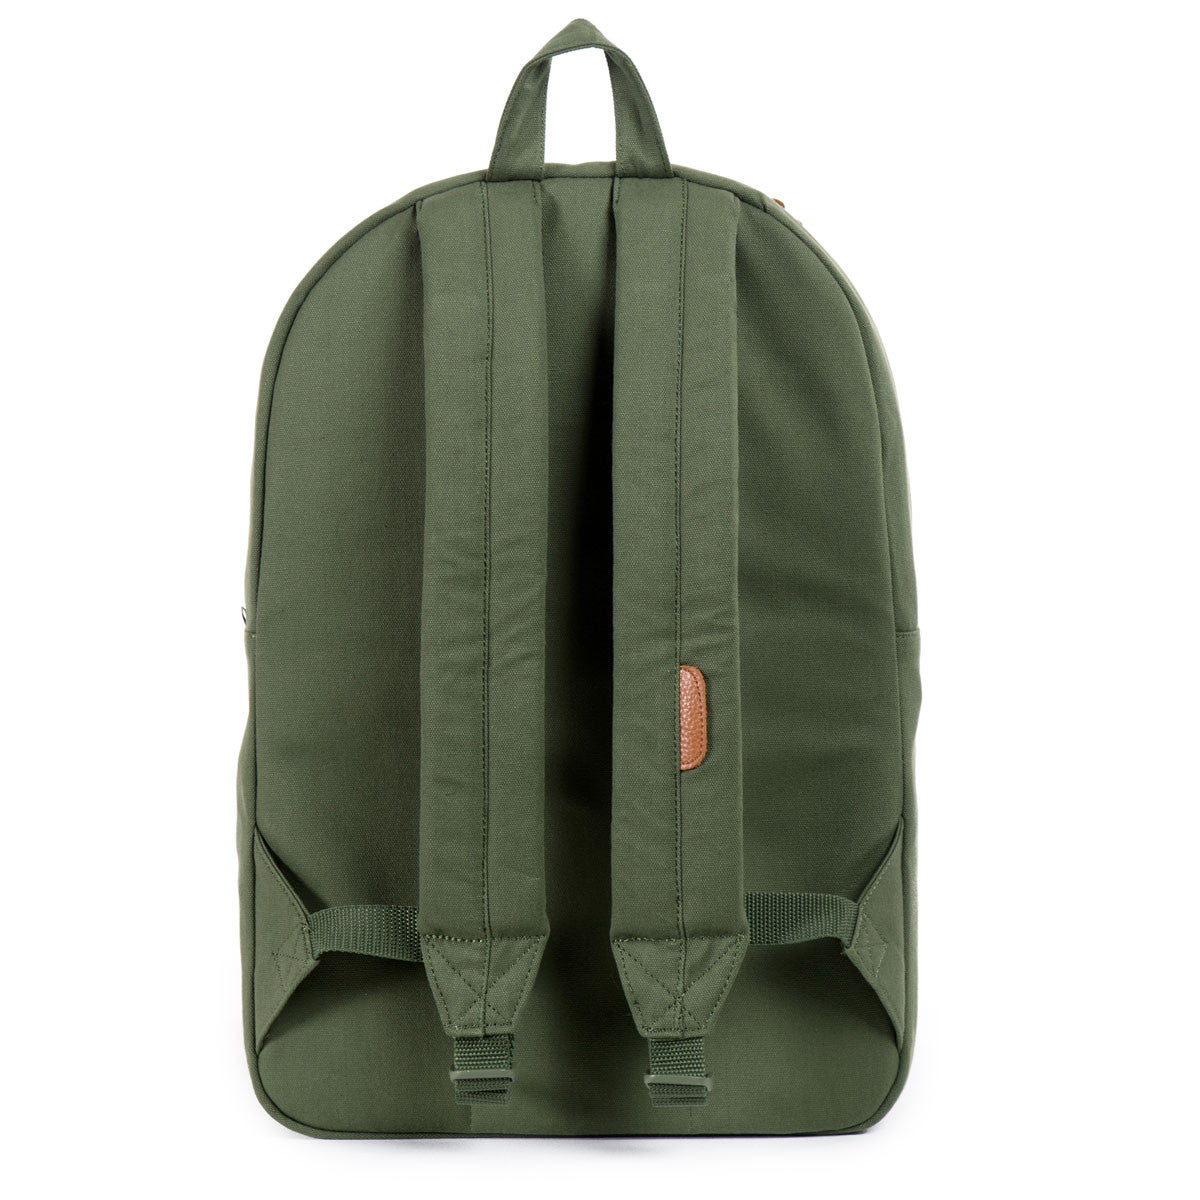 Herschel Supply Co.: Heritage Backpack - Army Coated Cotton Canvas / Indigo Denim (Select Series) back